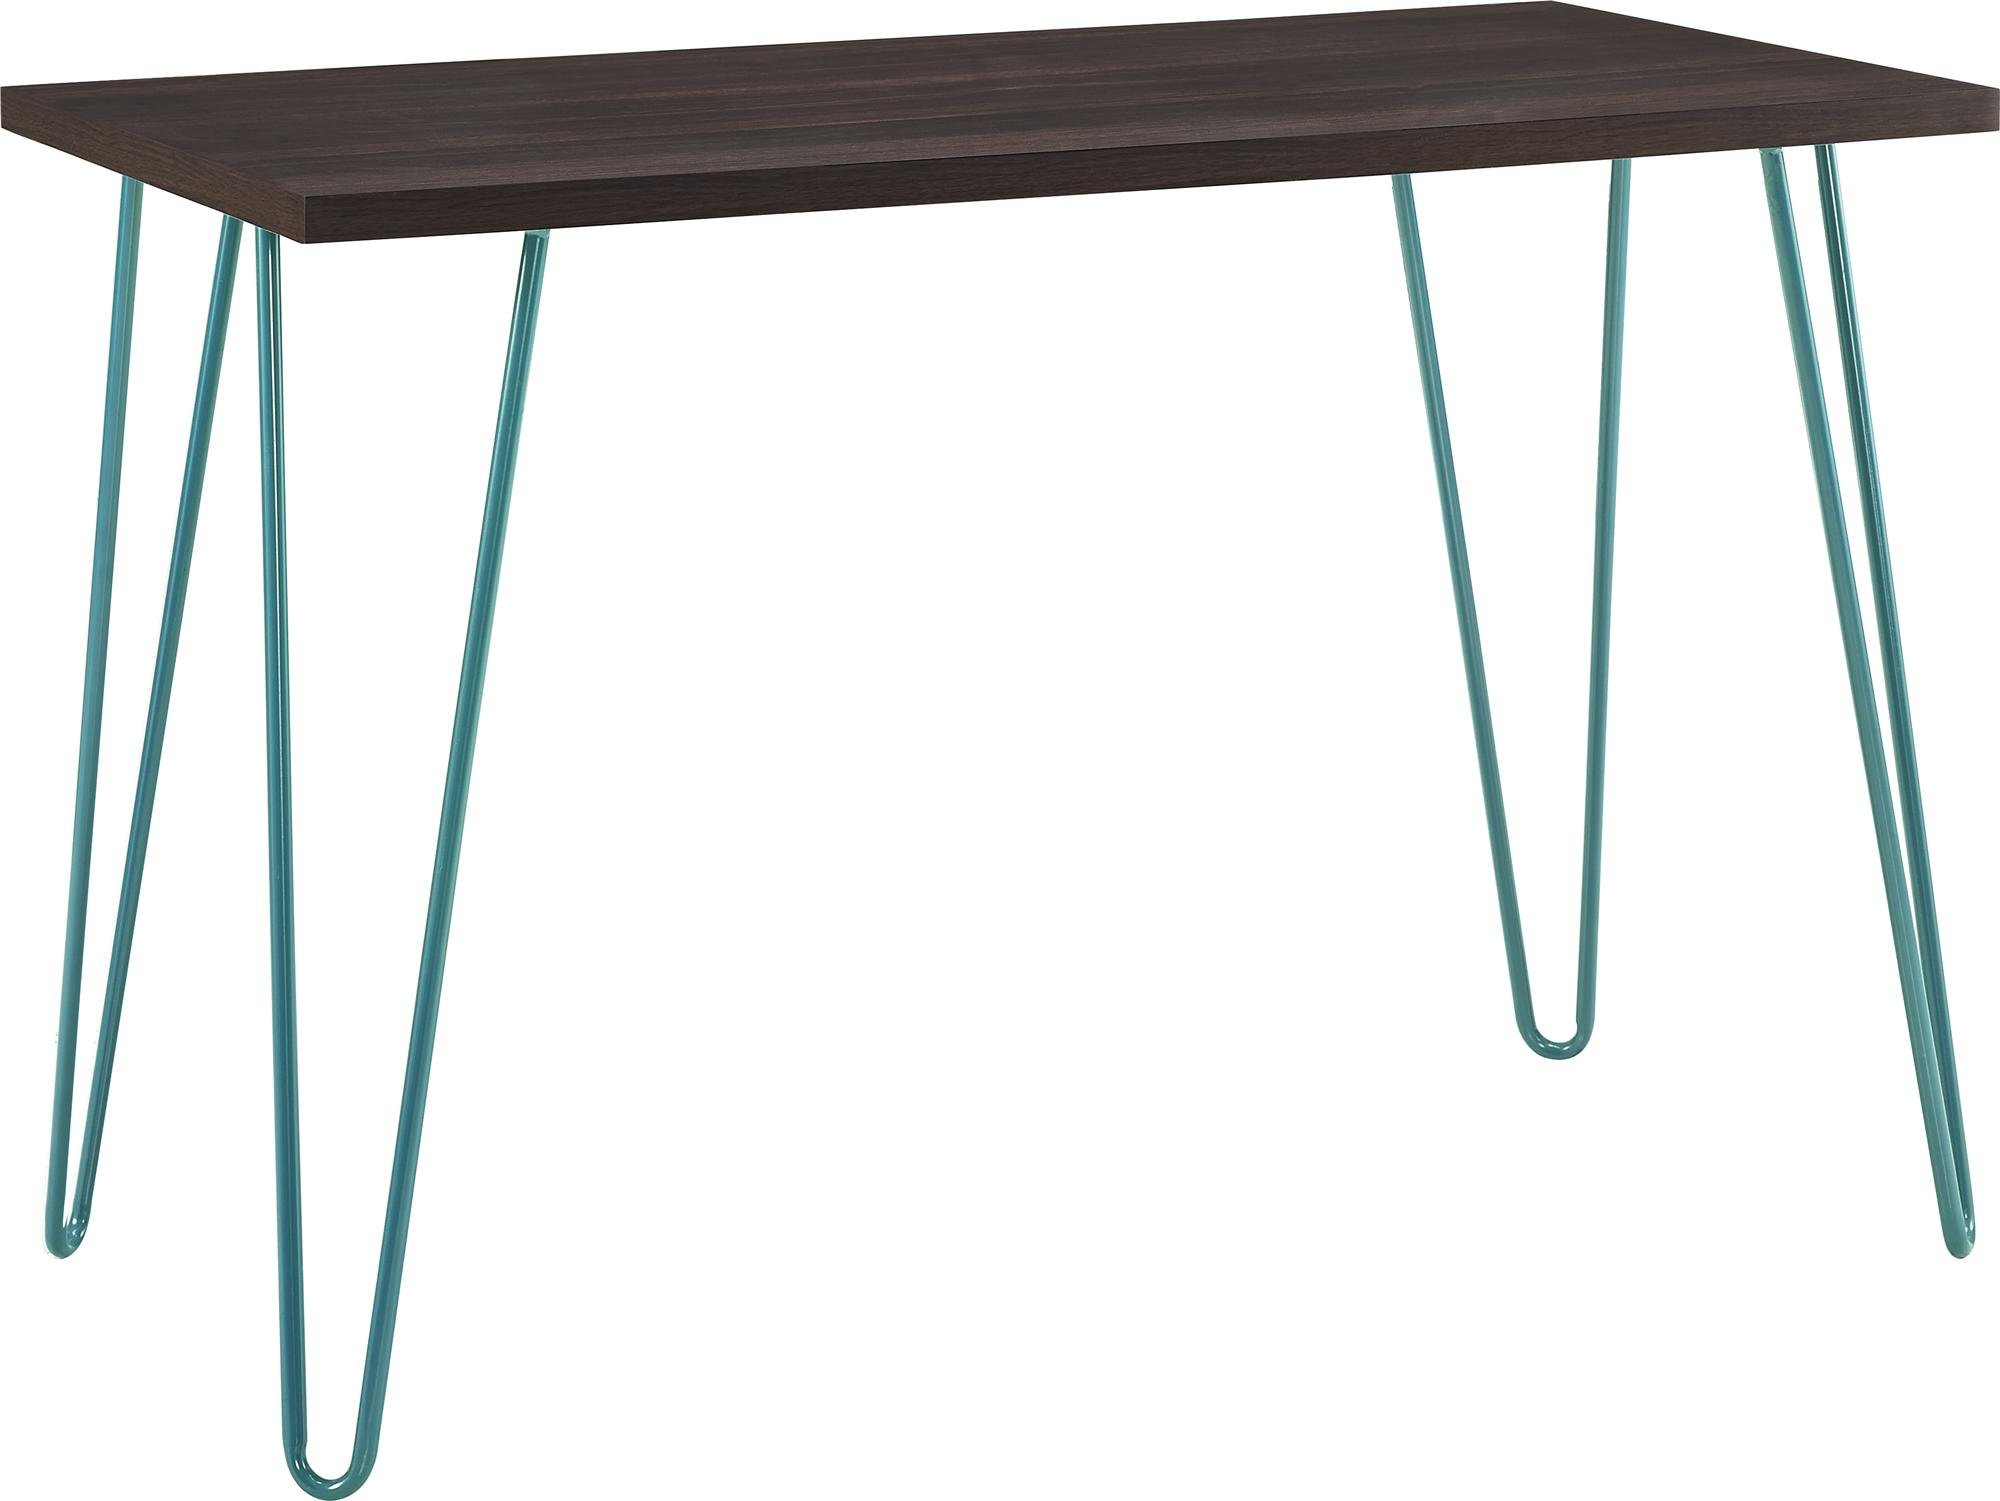 Ameriwood Home Owen Retro Desk, Espresso/Teal